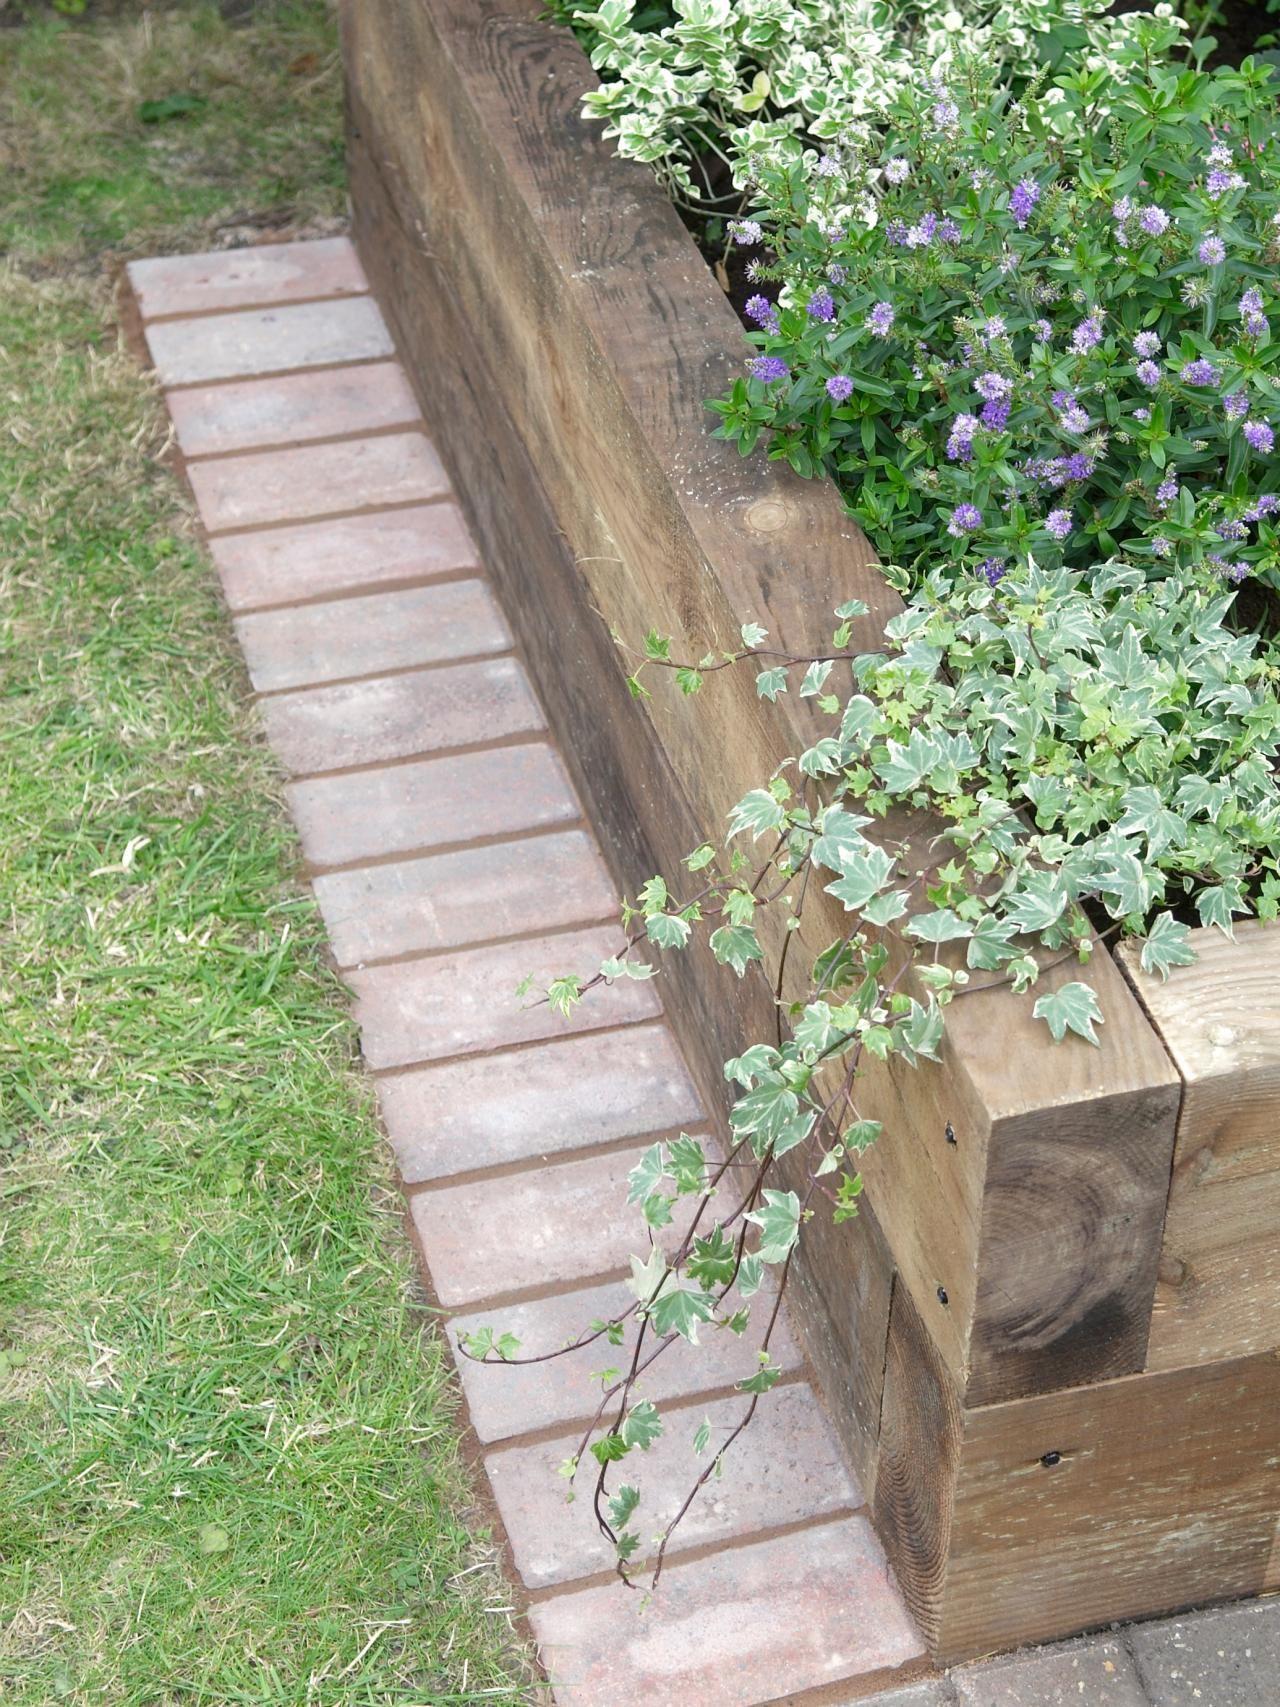 How To Install A Mowing Strip Of Bricks Landscaping Designs Pinterest Bricks Gardens And